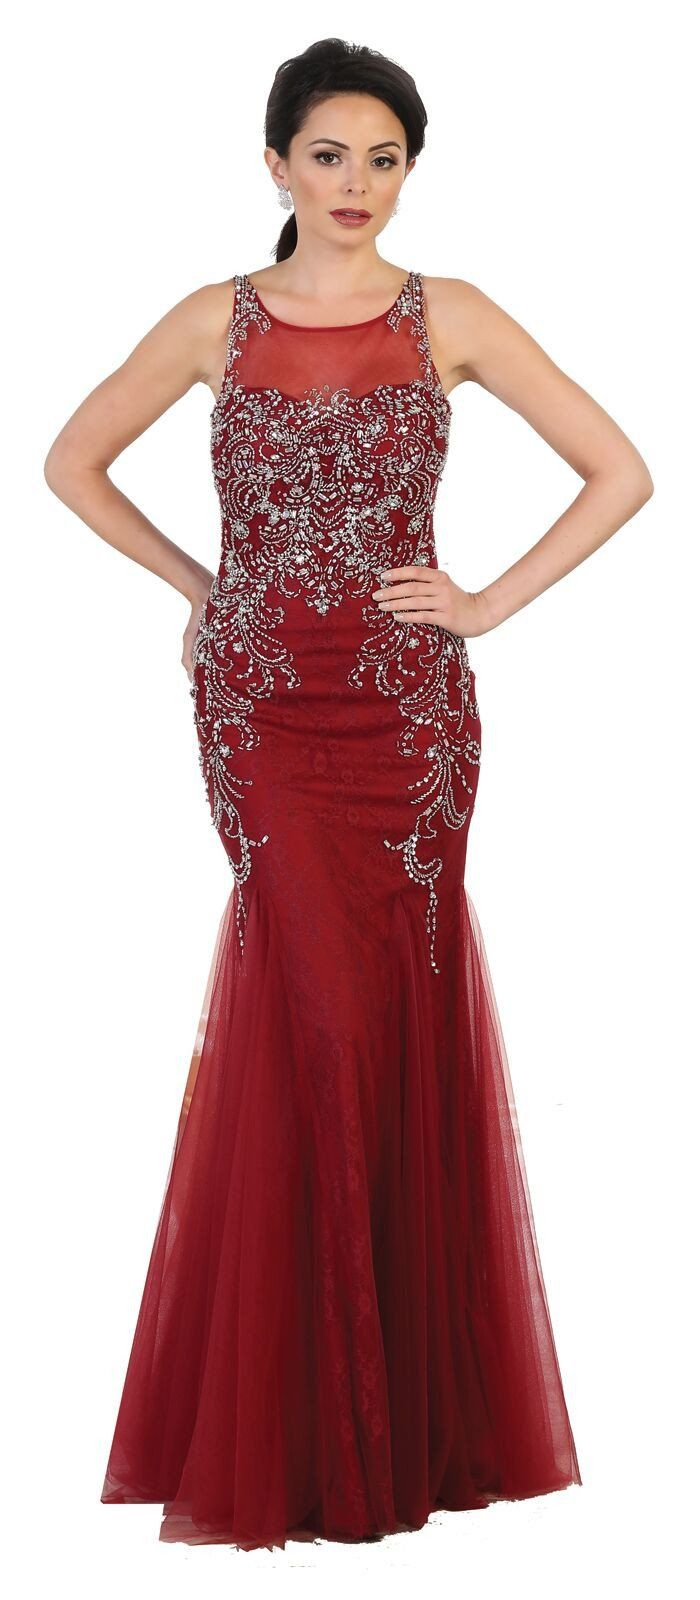 Long prom dress homecoming evening party gown pinterest tulle